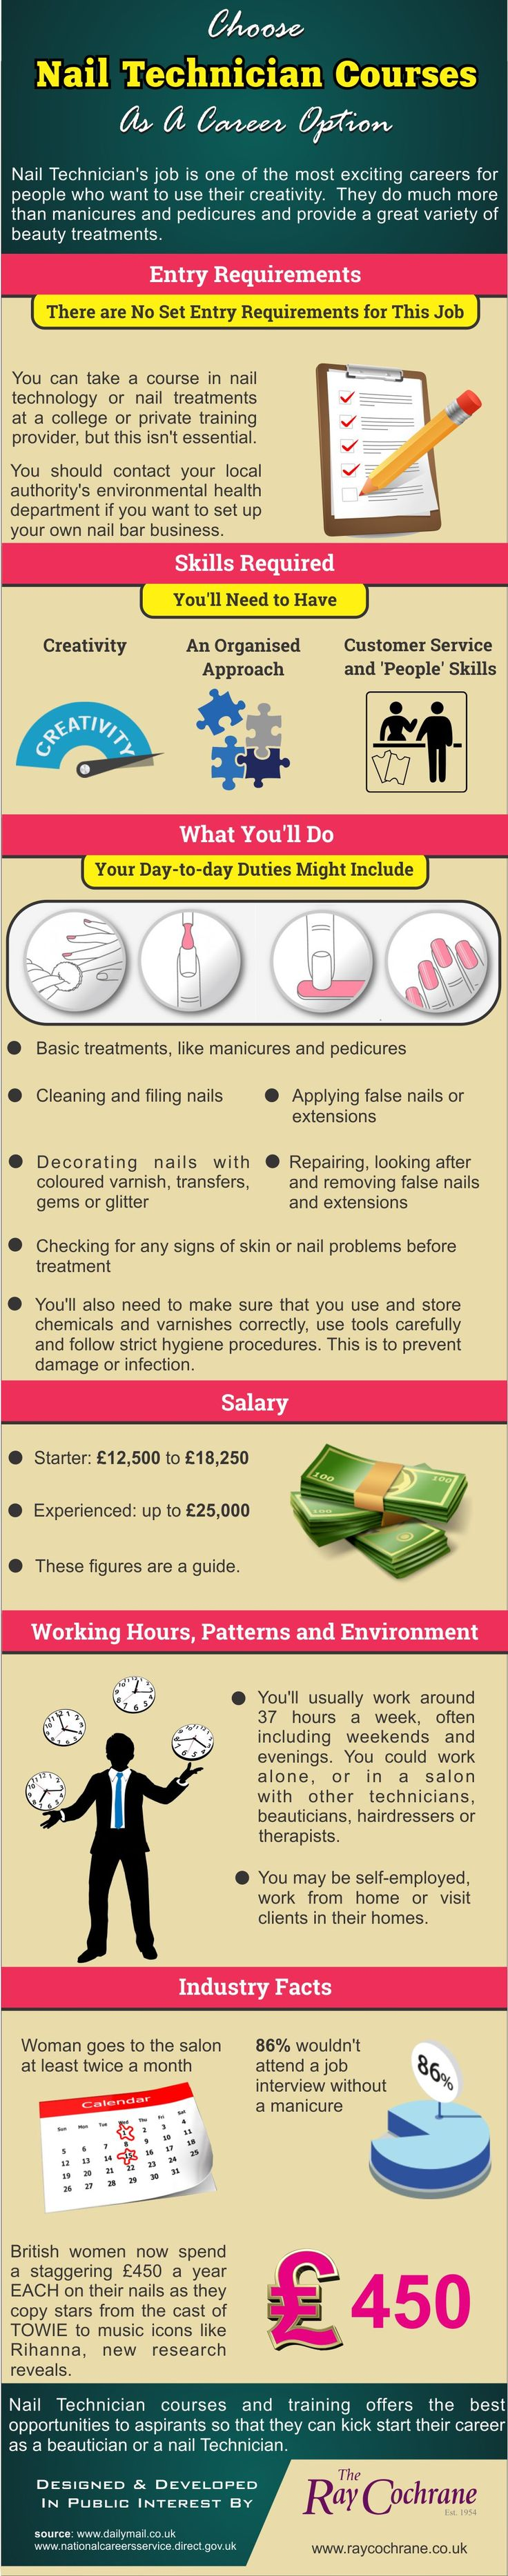 Nail technician's job is one of the most exciting careers